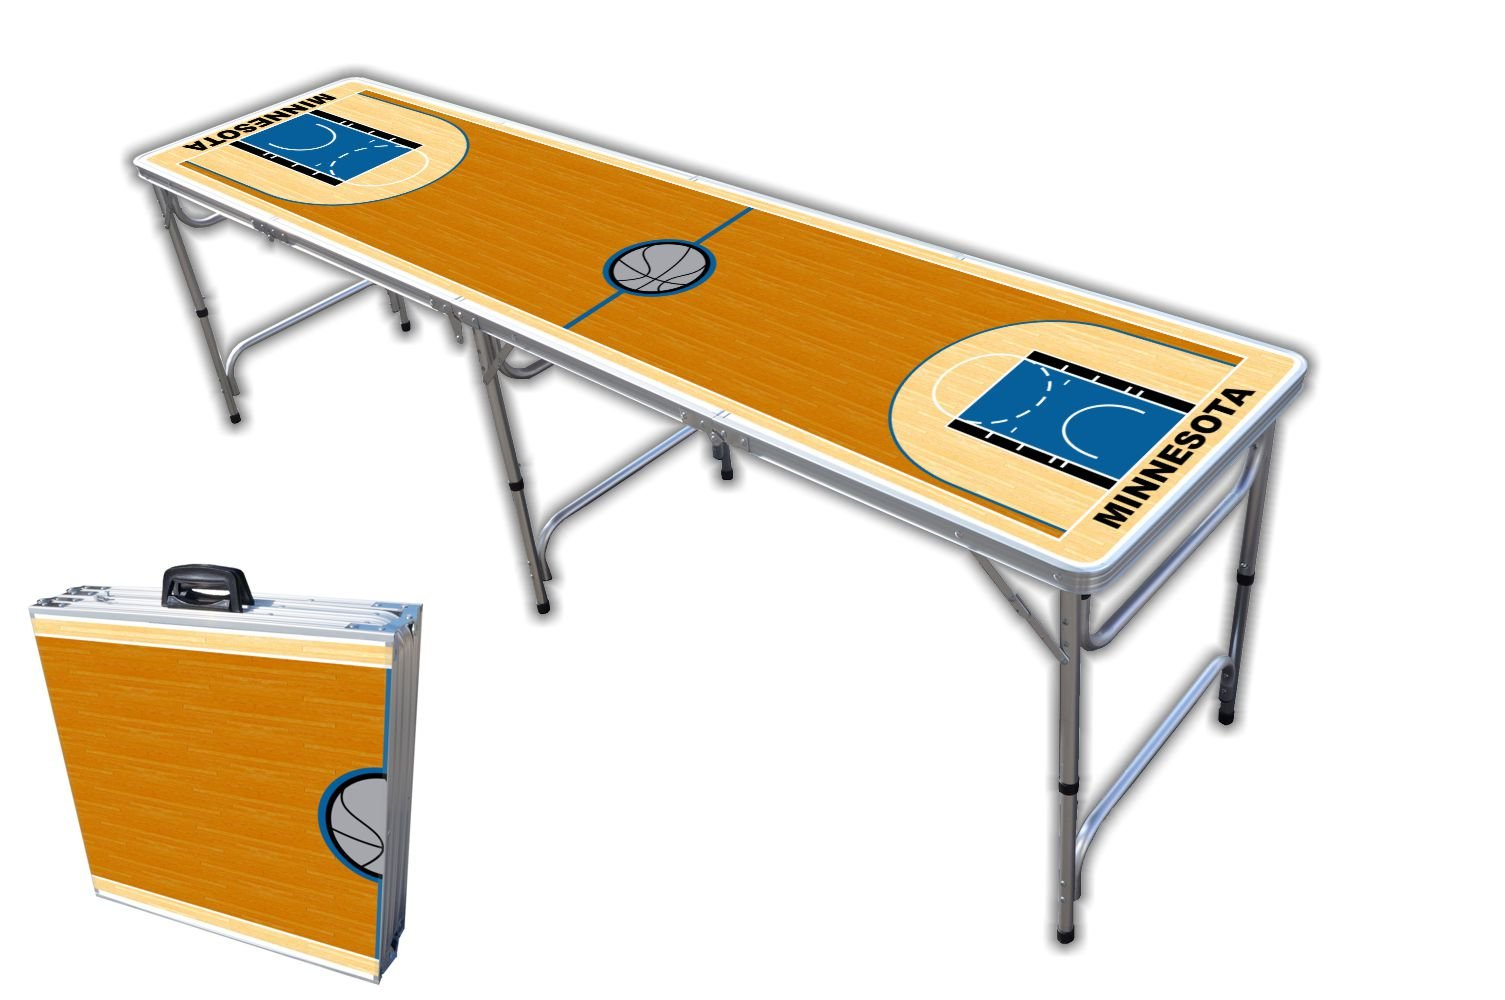 8-Foot Professional Beer Pong Table - Minnesota Basketball Court Graphic by PartyPongTables.com